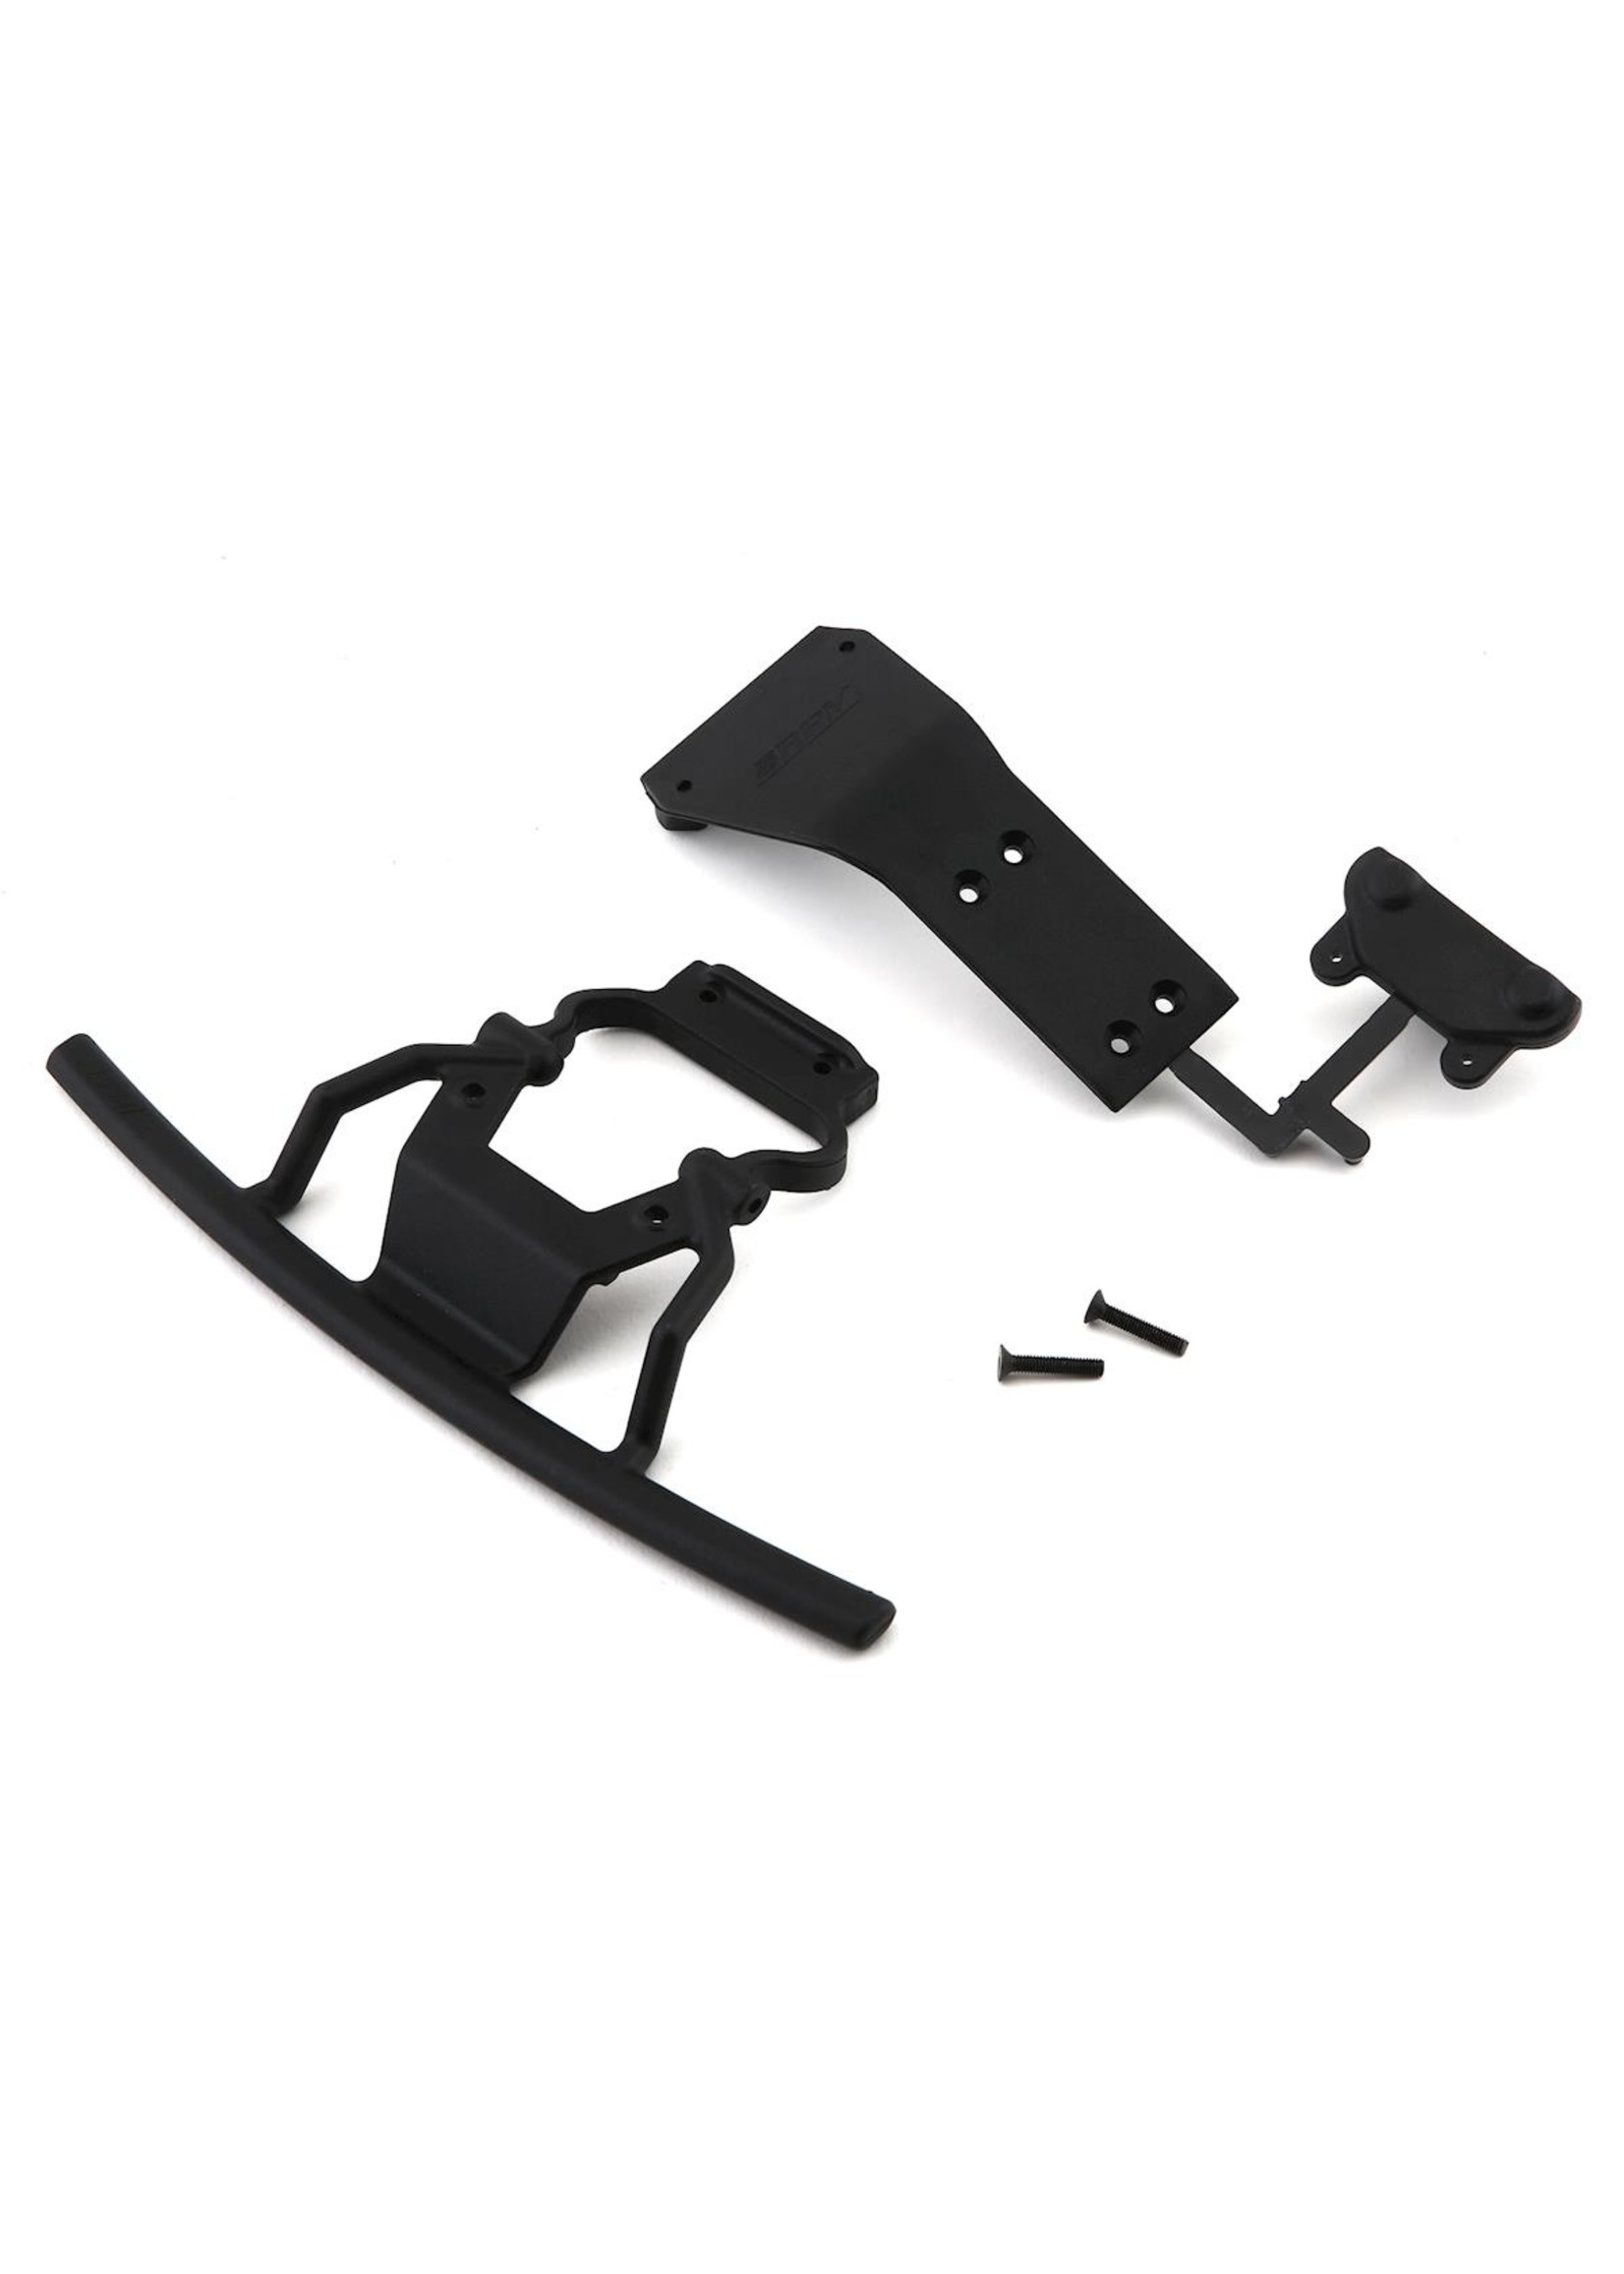 RPM RPM73172 RPM Front Bumper & Skid Plate for the Losi Baja Rey (Ford Raptor Bodies)